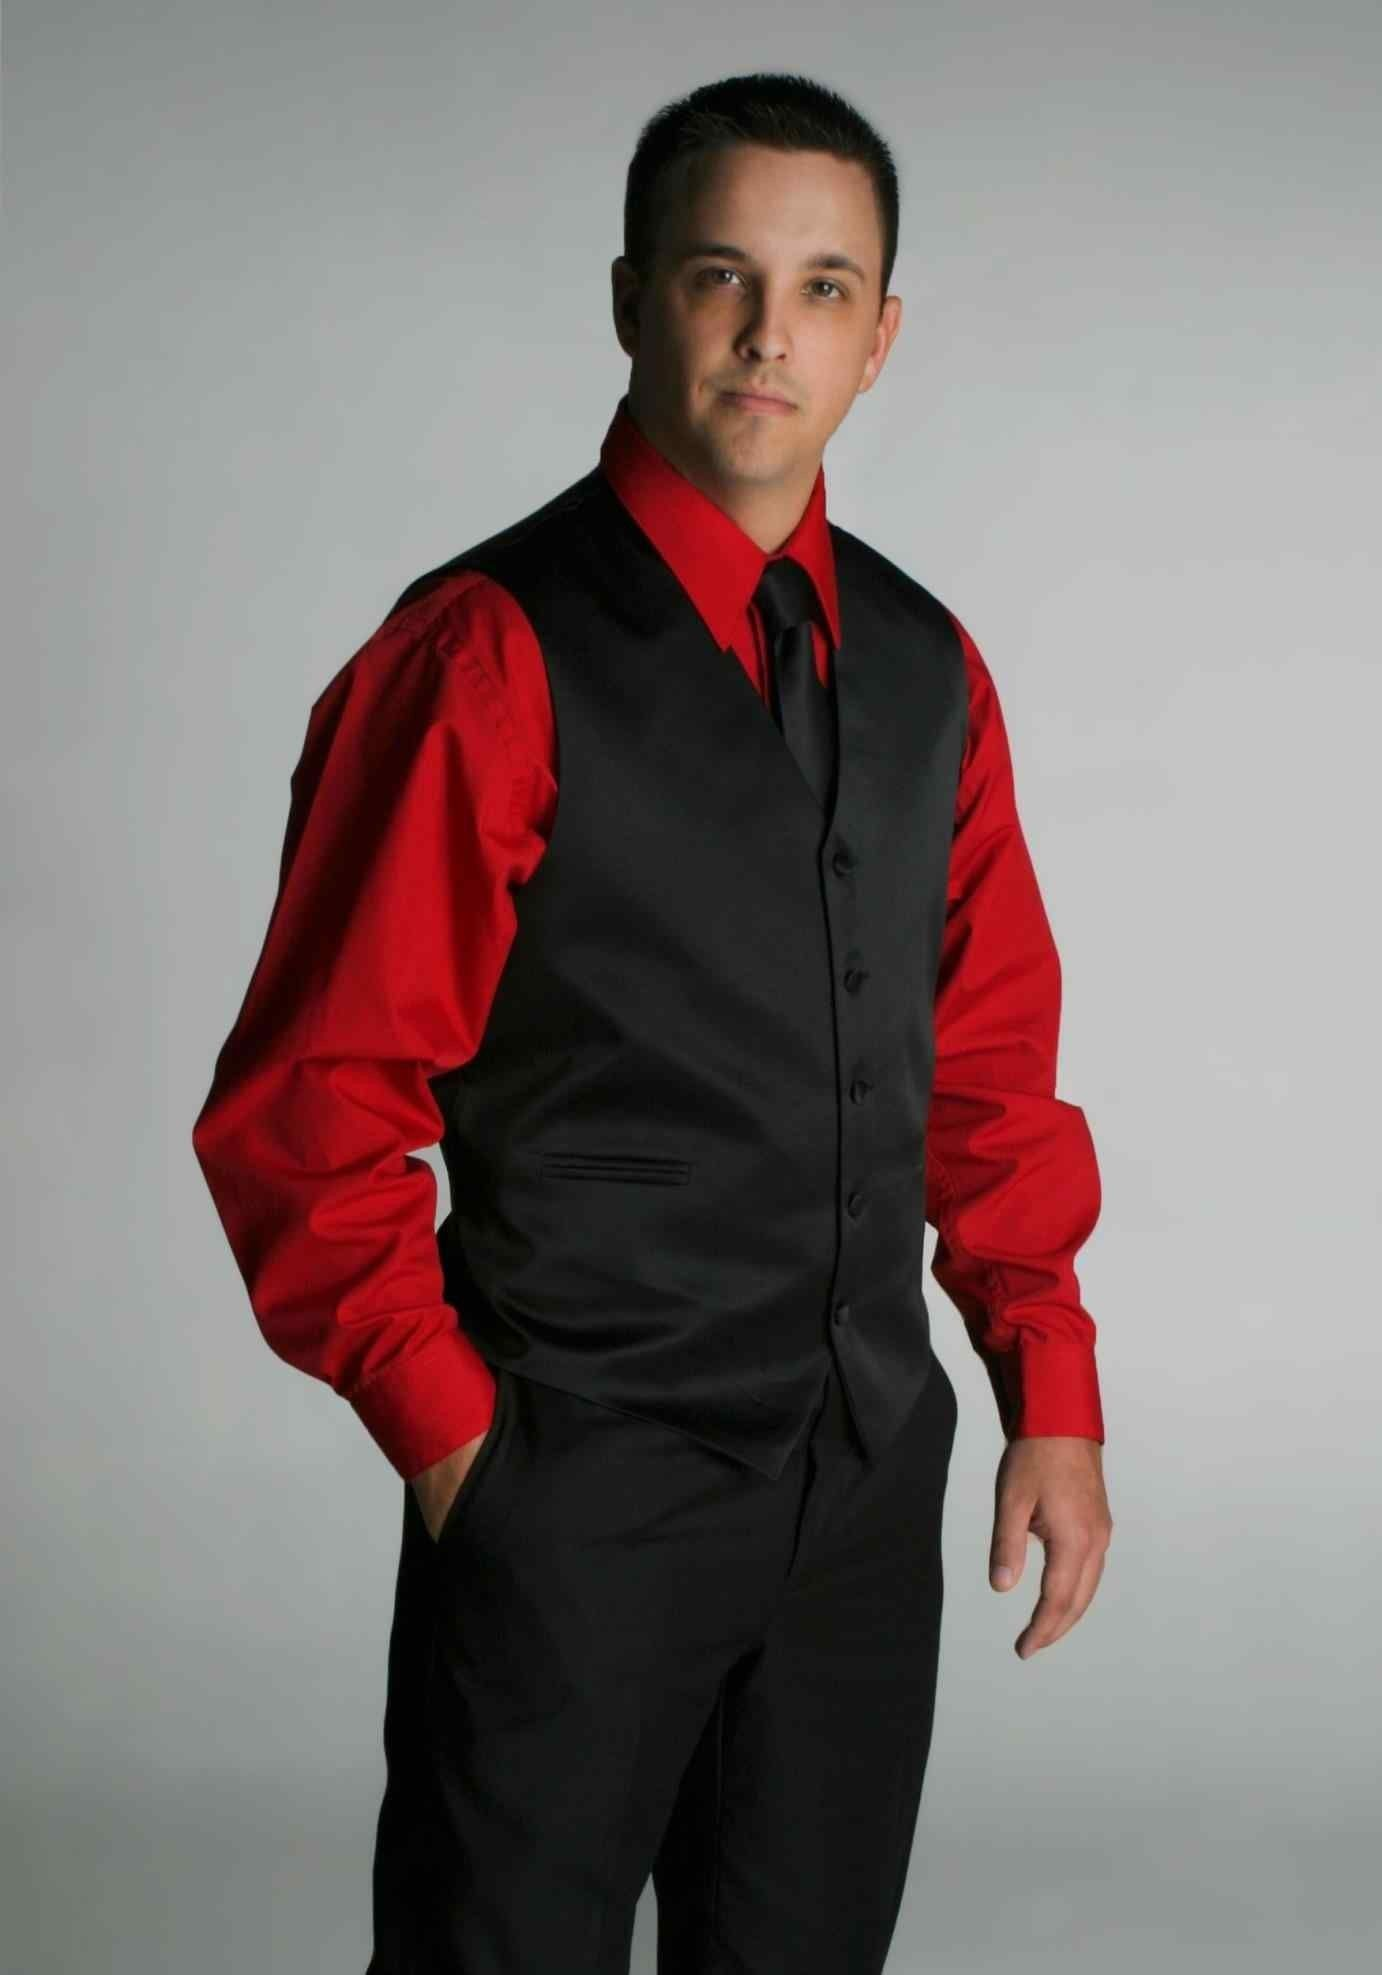 Awesome 40 Black Shirt With Bow Tie In 2021 Black Suit Men Red And Black Shirt Black Shirt Outfits [ 1975 x 1382 Pixel ]